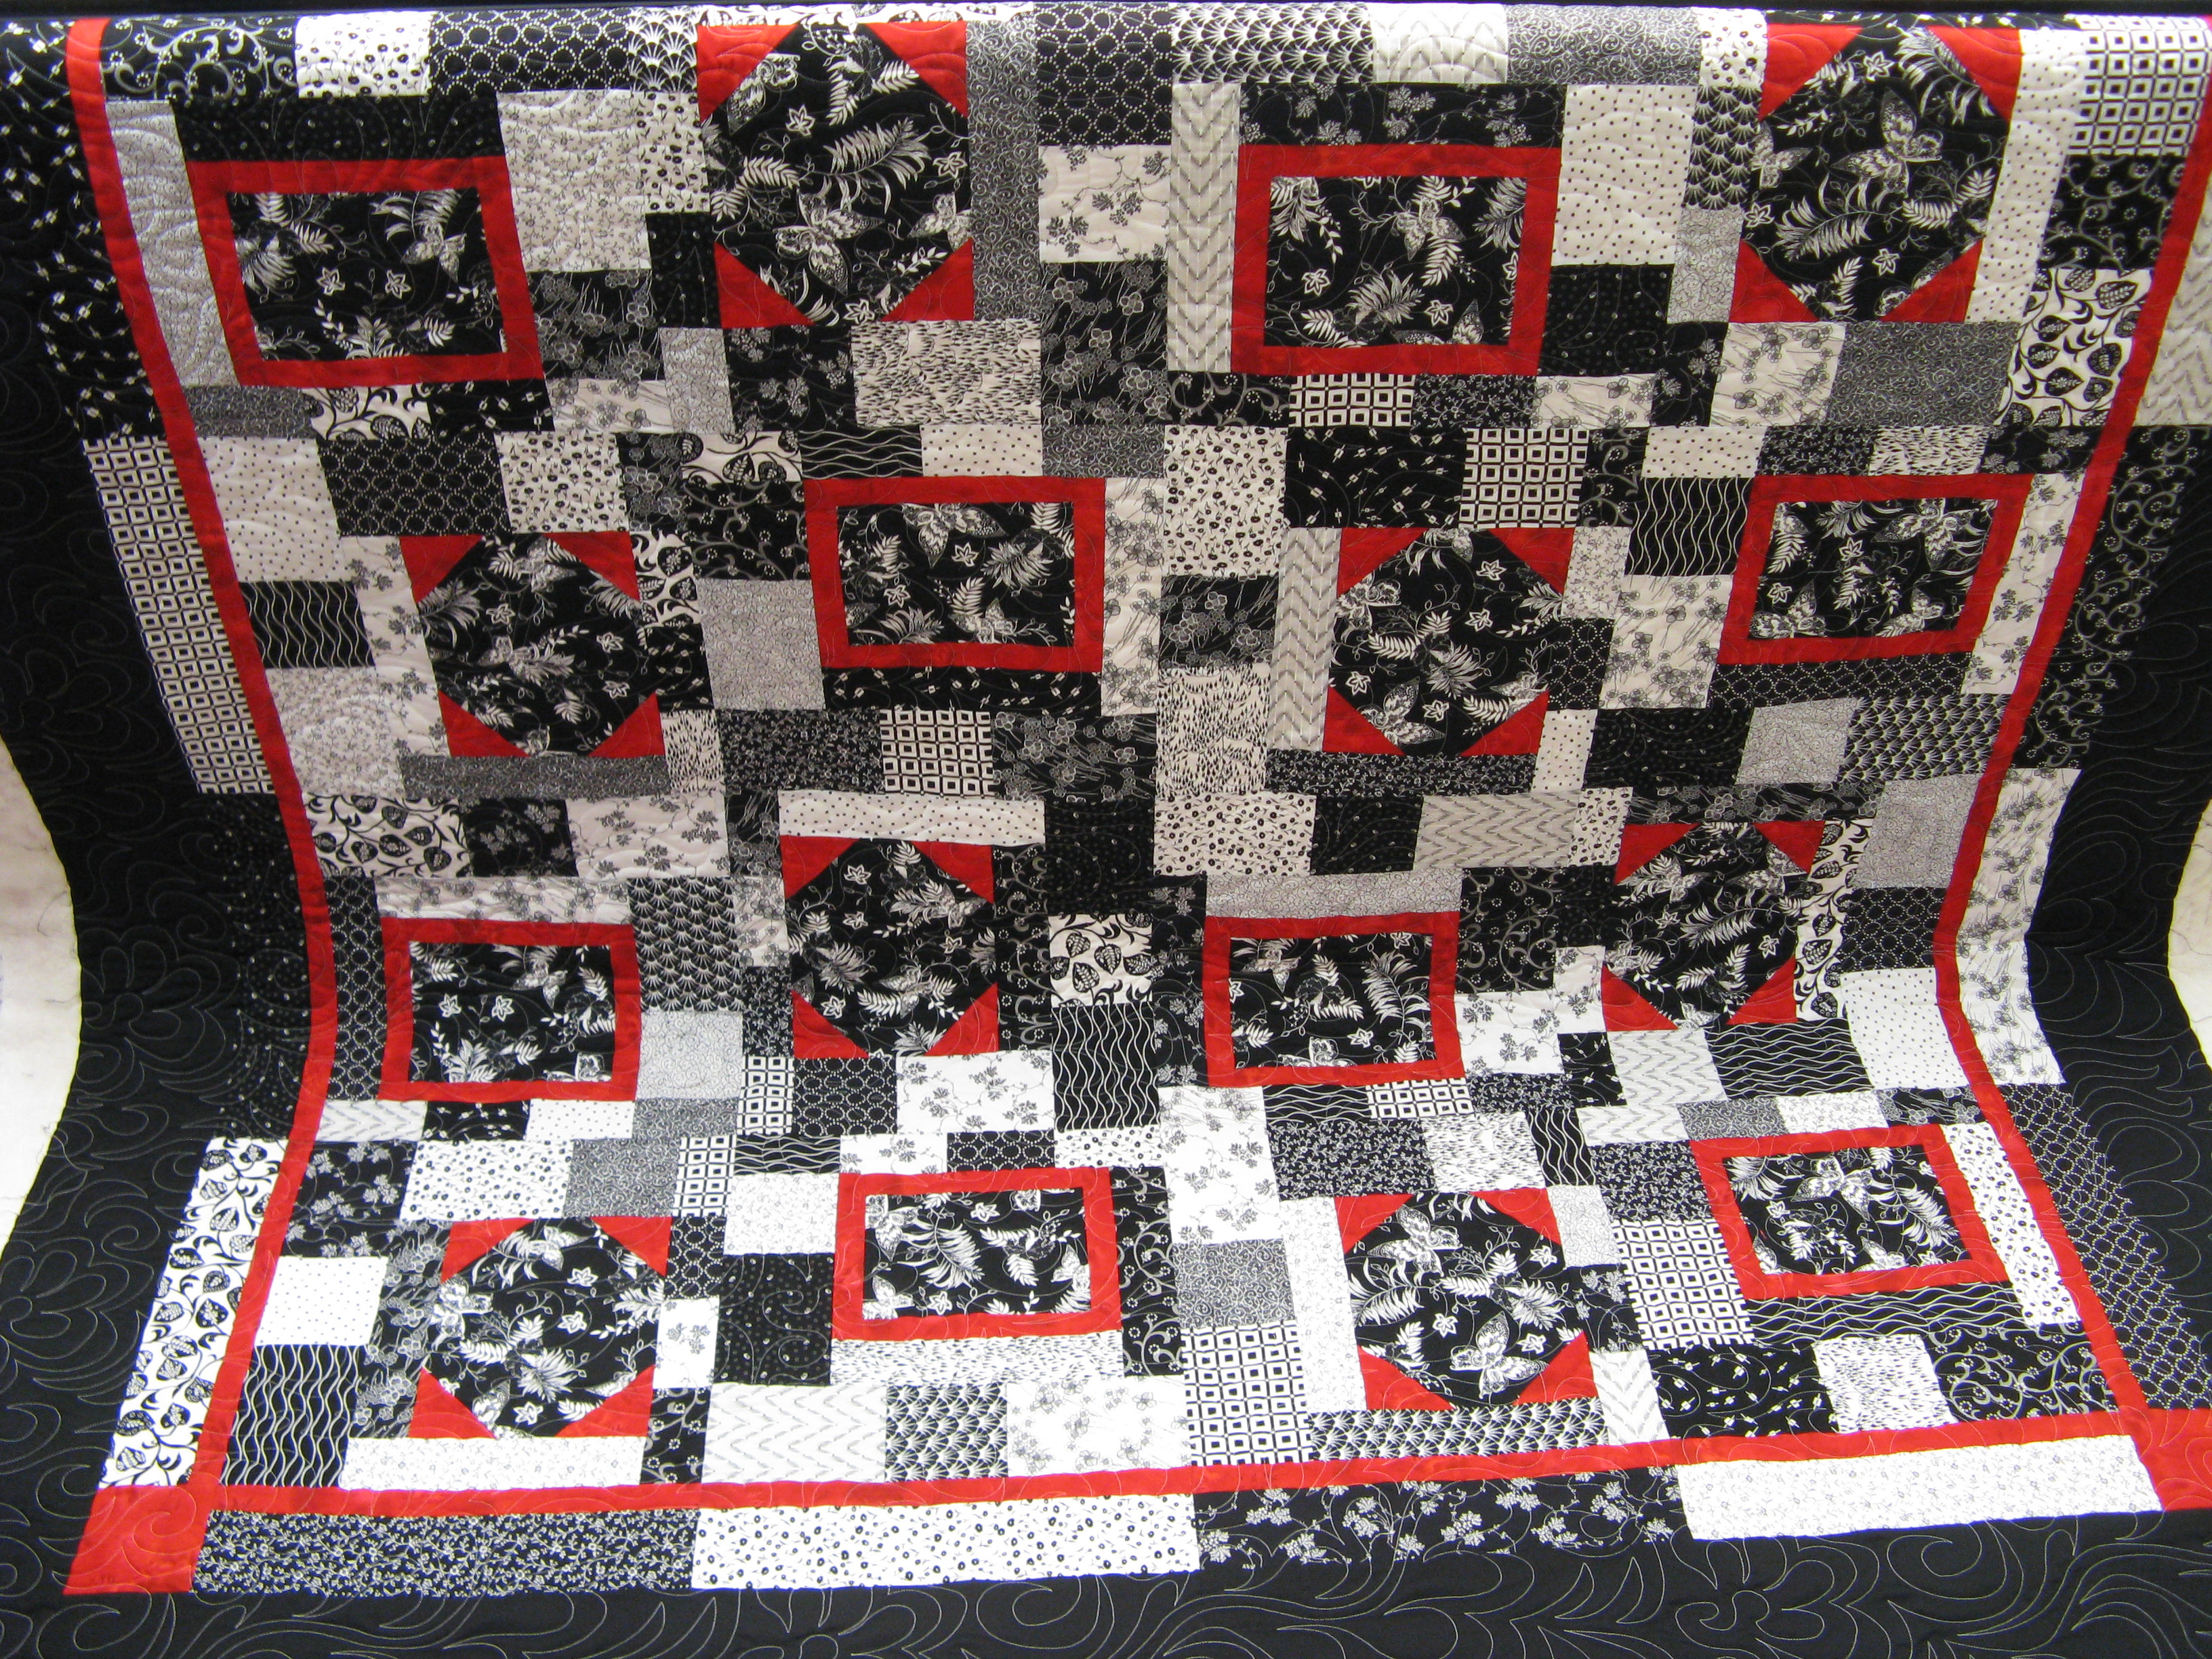 to quilt overall part close great called lime borders white feathers black green a of is center texture melinda i and here quilts etc the quilted curling with up panto gives it